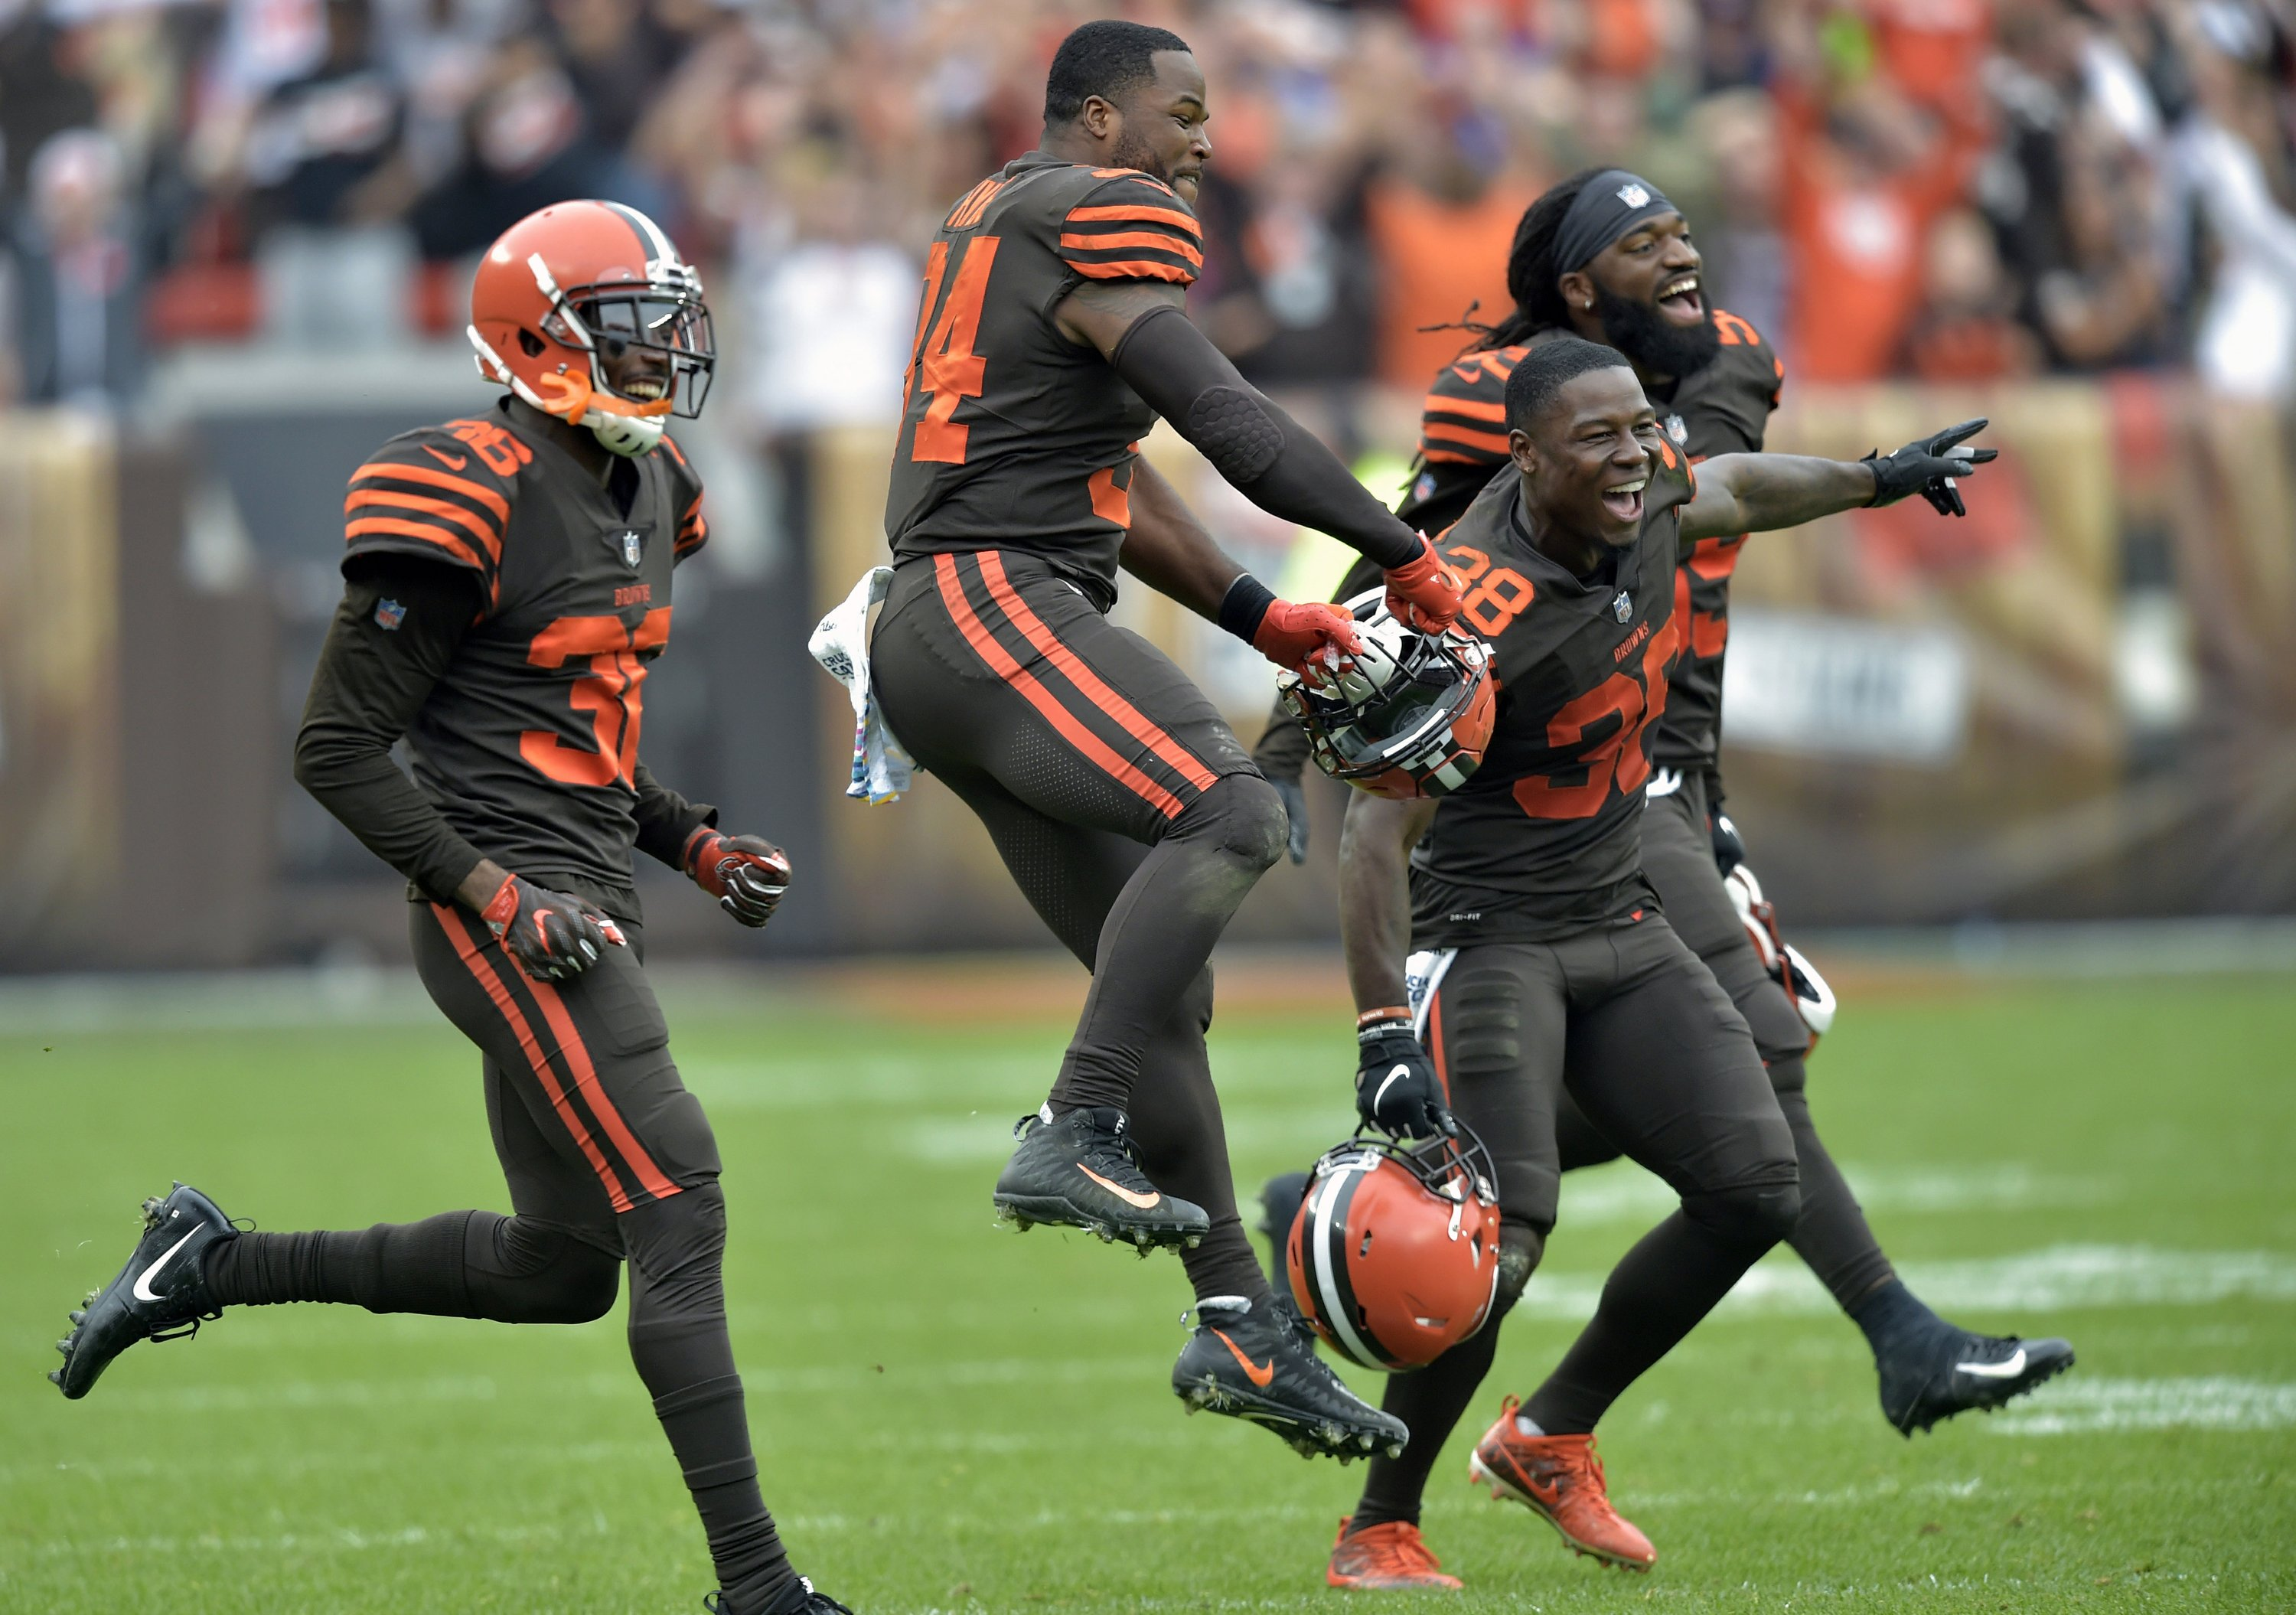 3 s a charm  Browns edge Ravens 12-9 in overtime on late FG 7aac33549